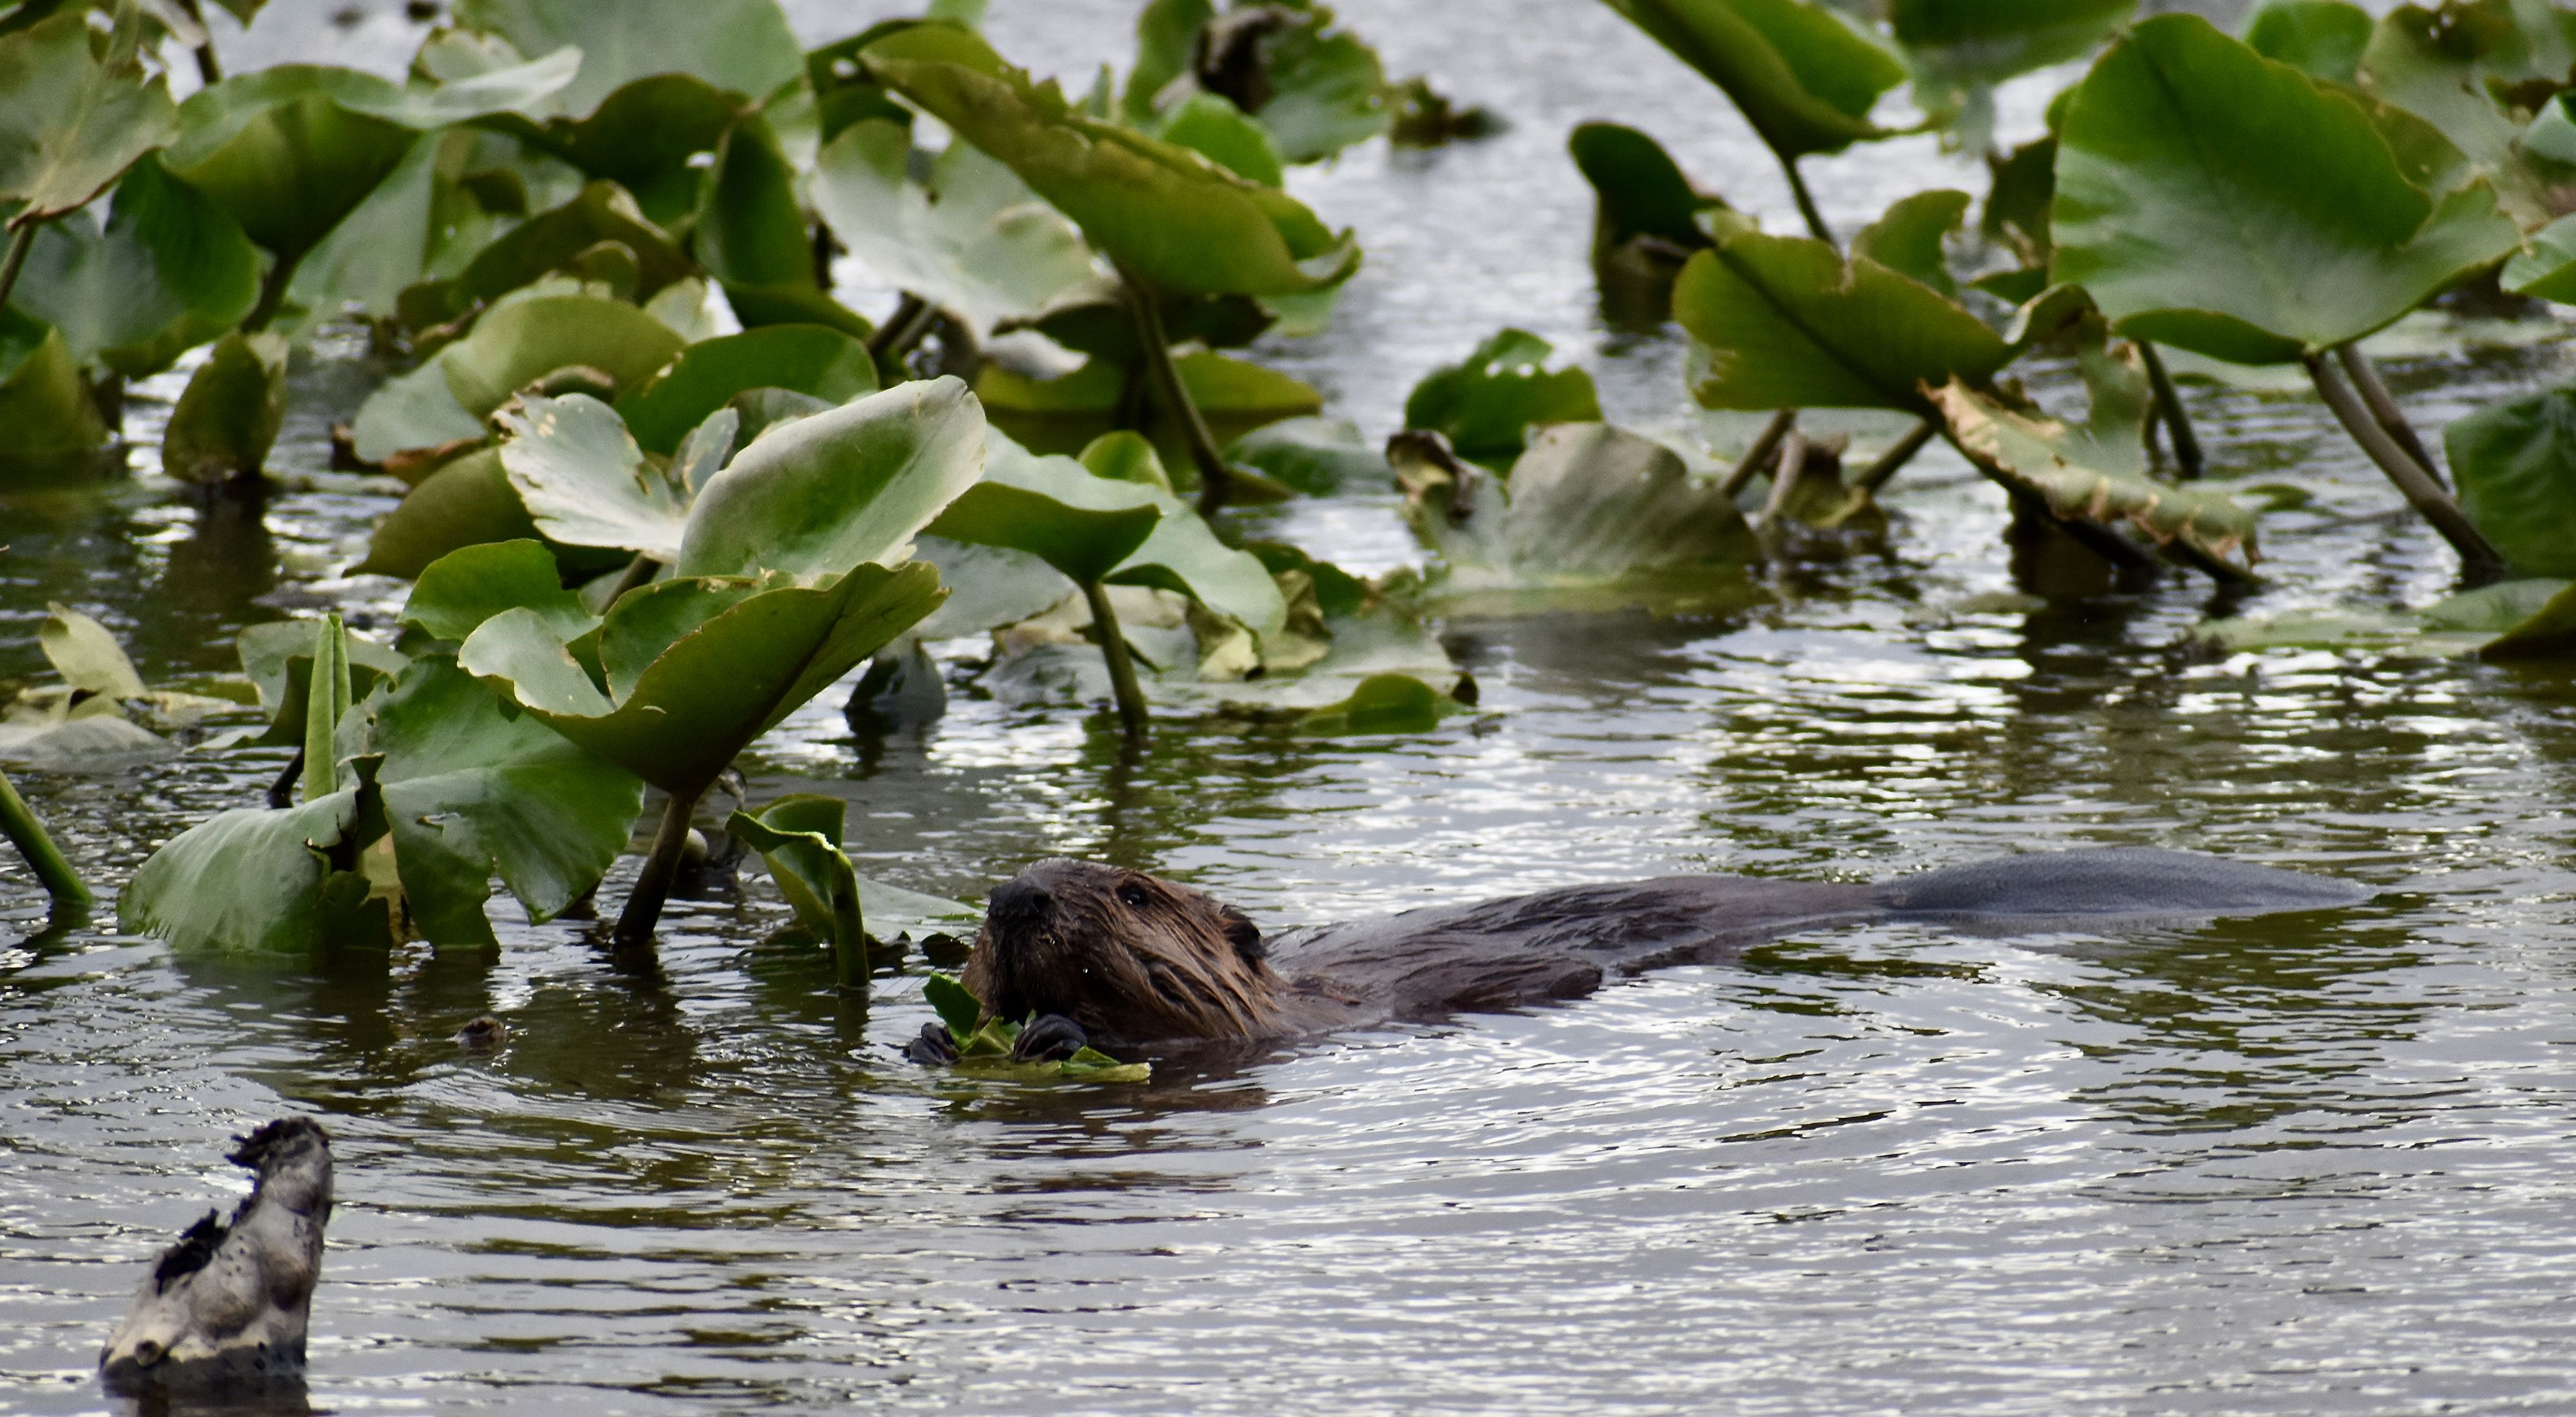 A beaver swims in a lake created by beaver activity. Its head, back and flat tail are visible at the surface of the rippling water. Thick leaves from aquatic plants float behind it.